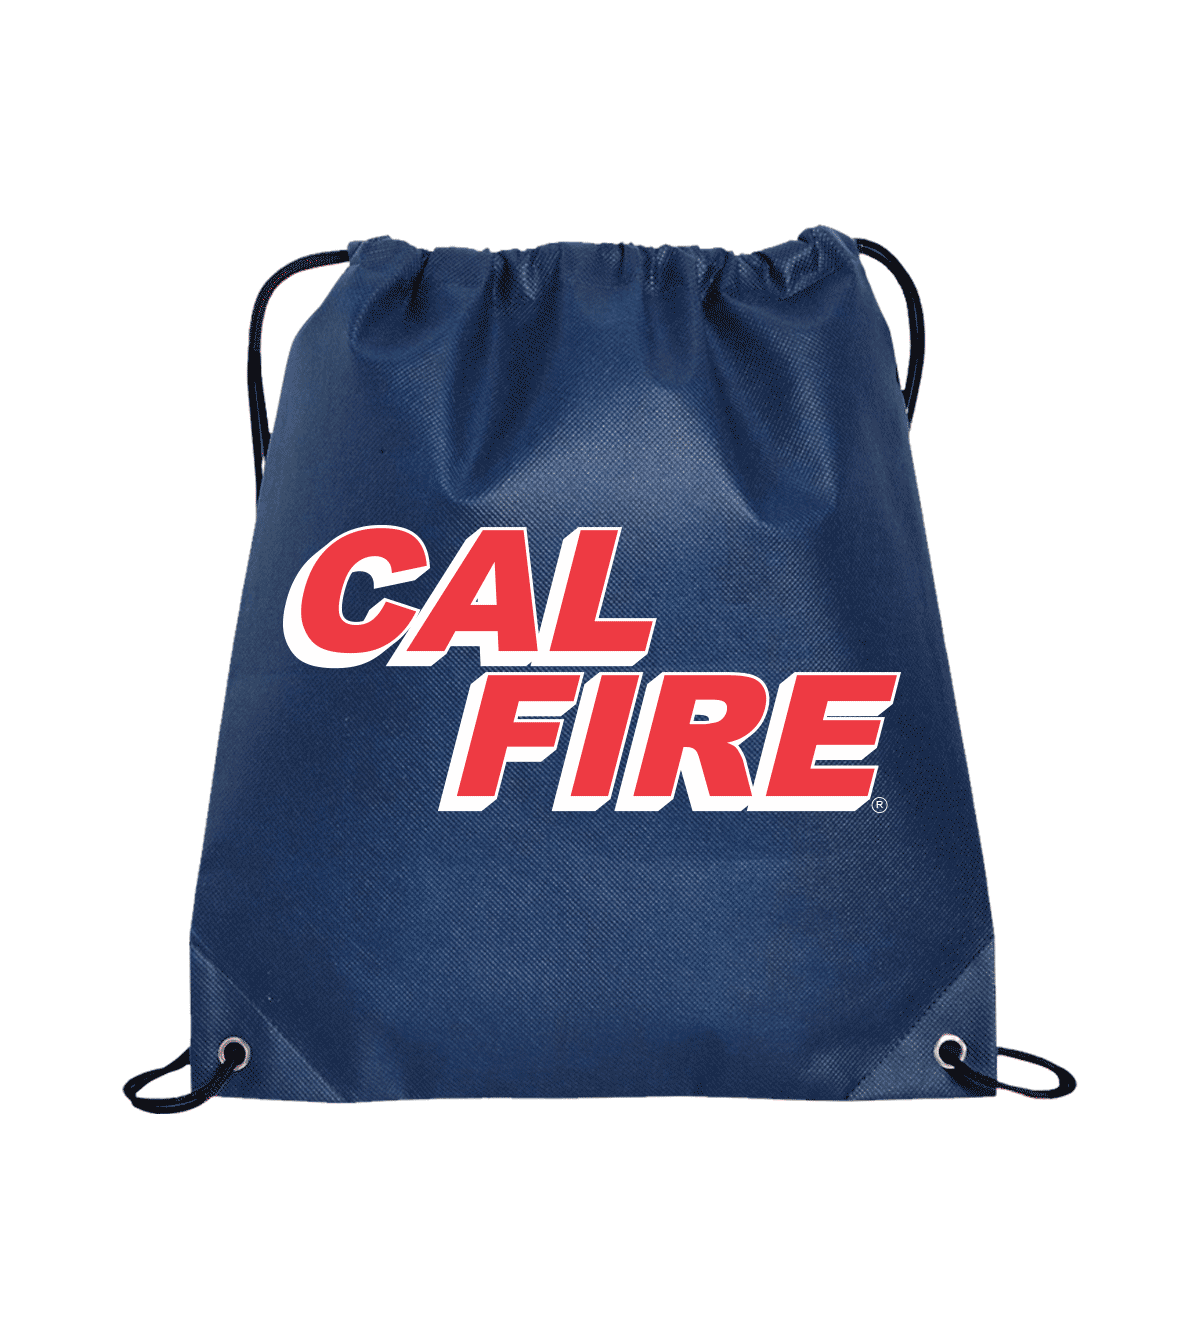 CAL FIRE Cinch Sak